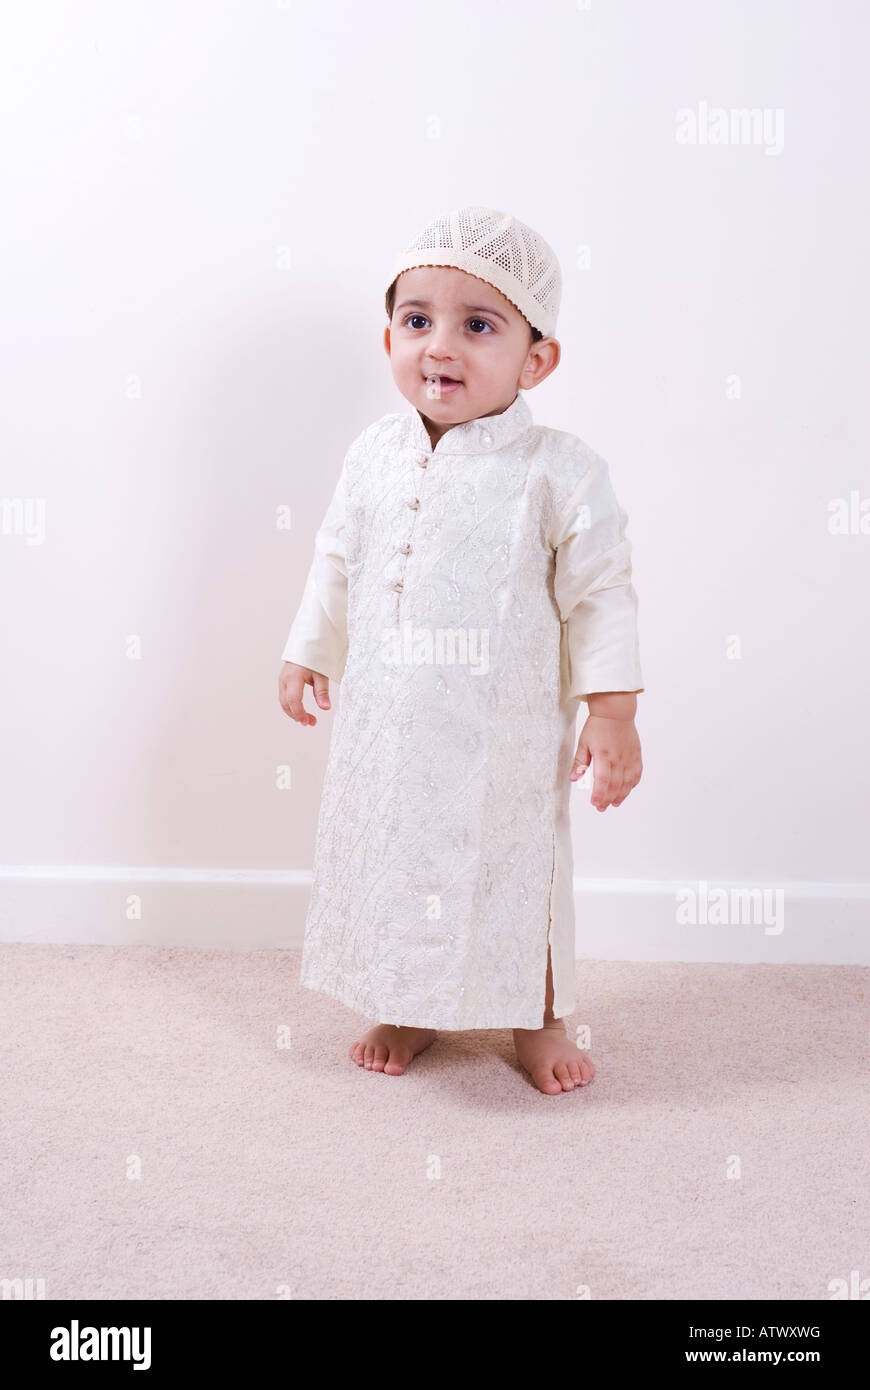 122e526f7 One year old Arabic boy wearing traditional Islamic outfit Jilbab ...